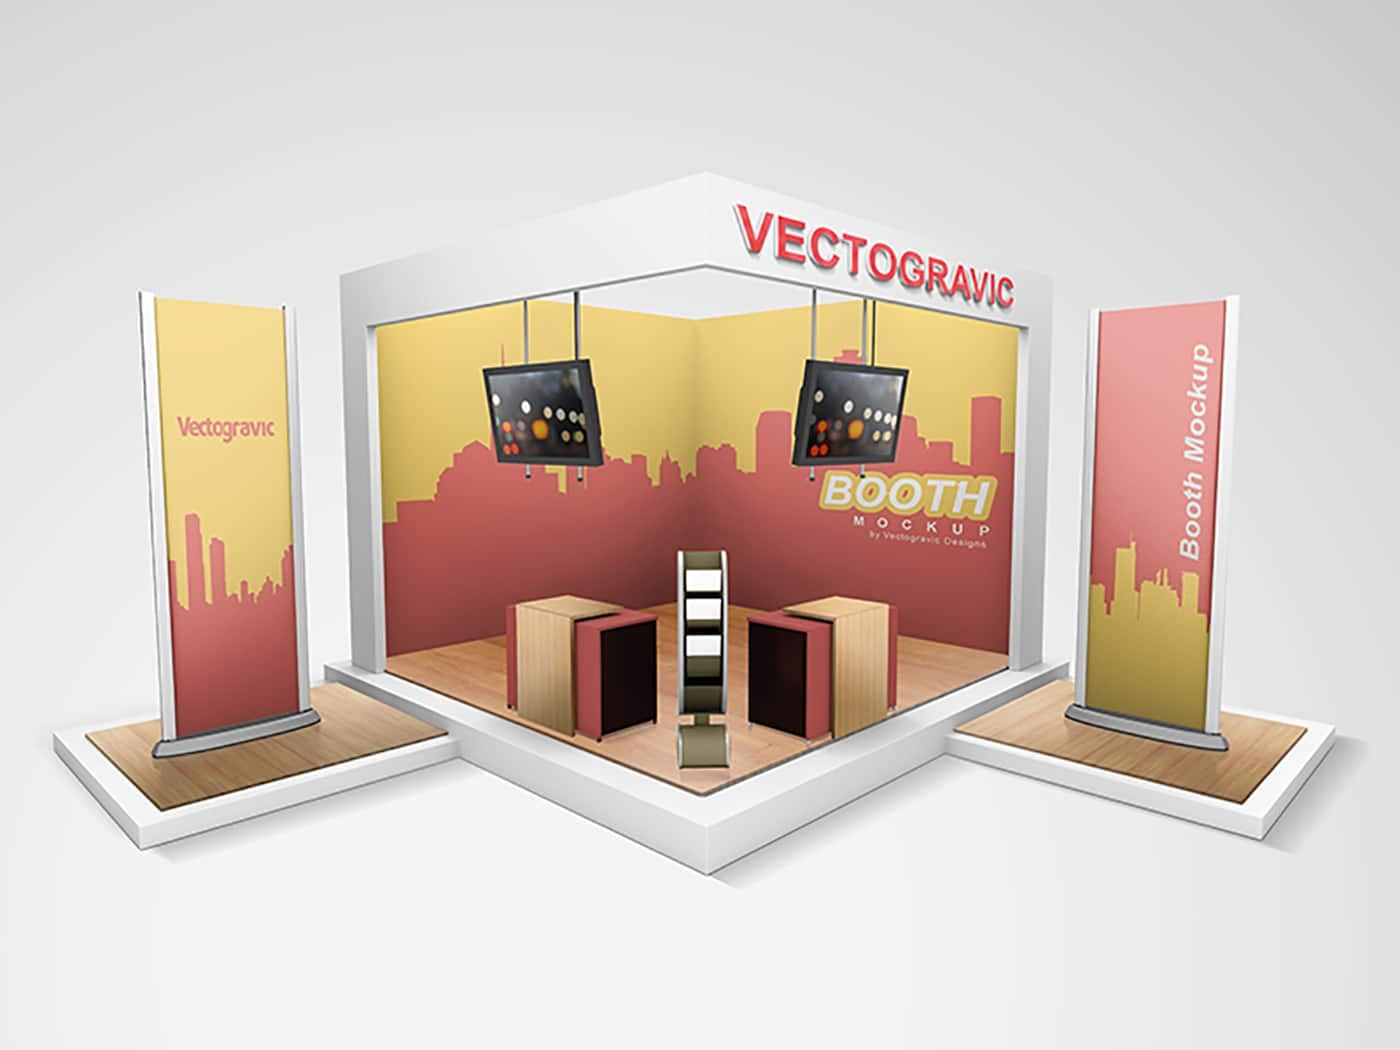 Technical Display Booth